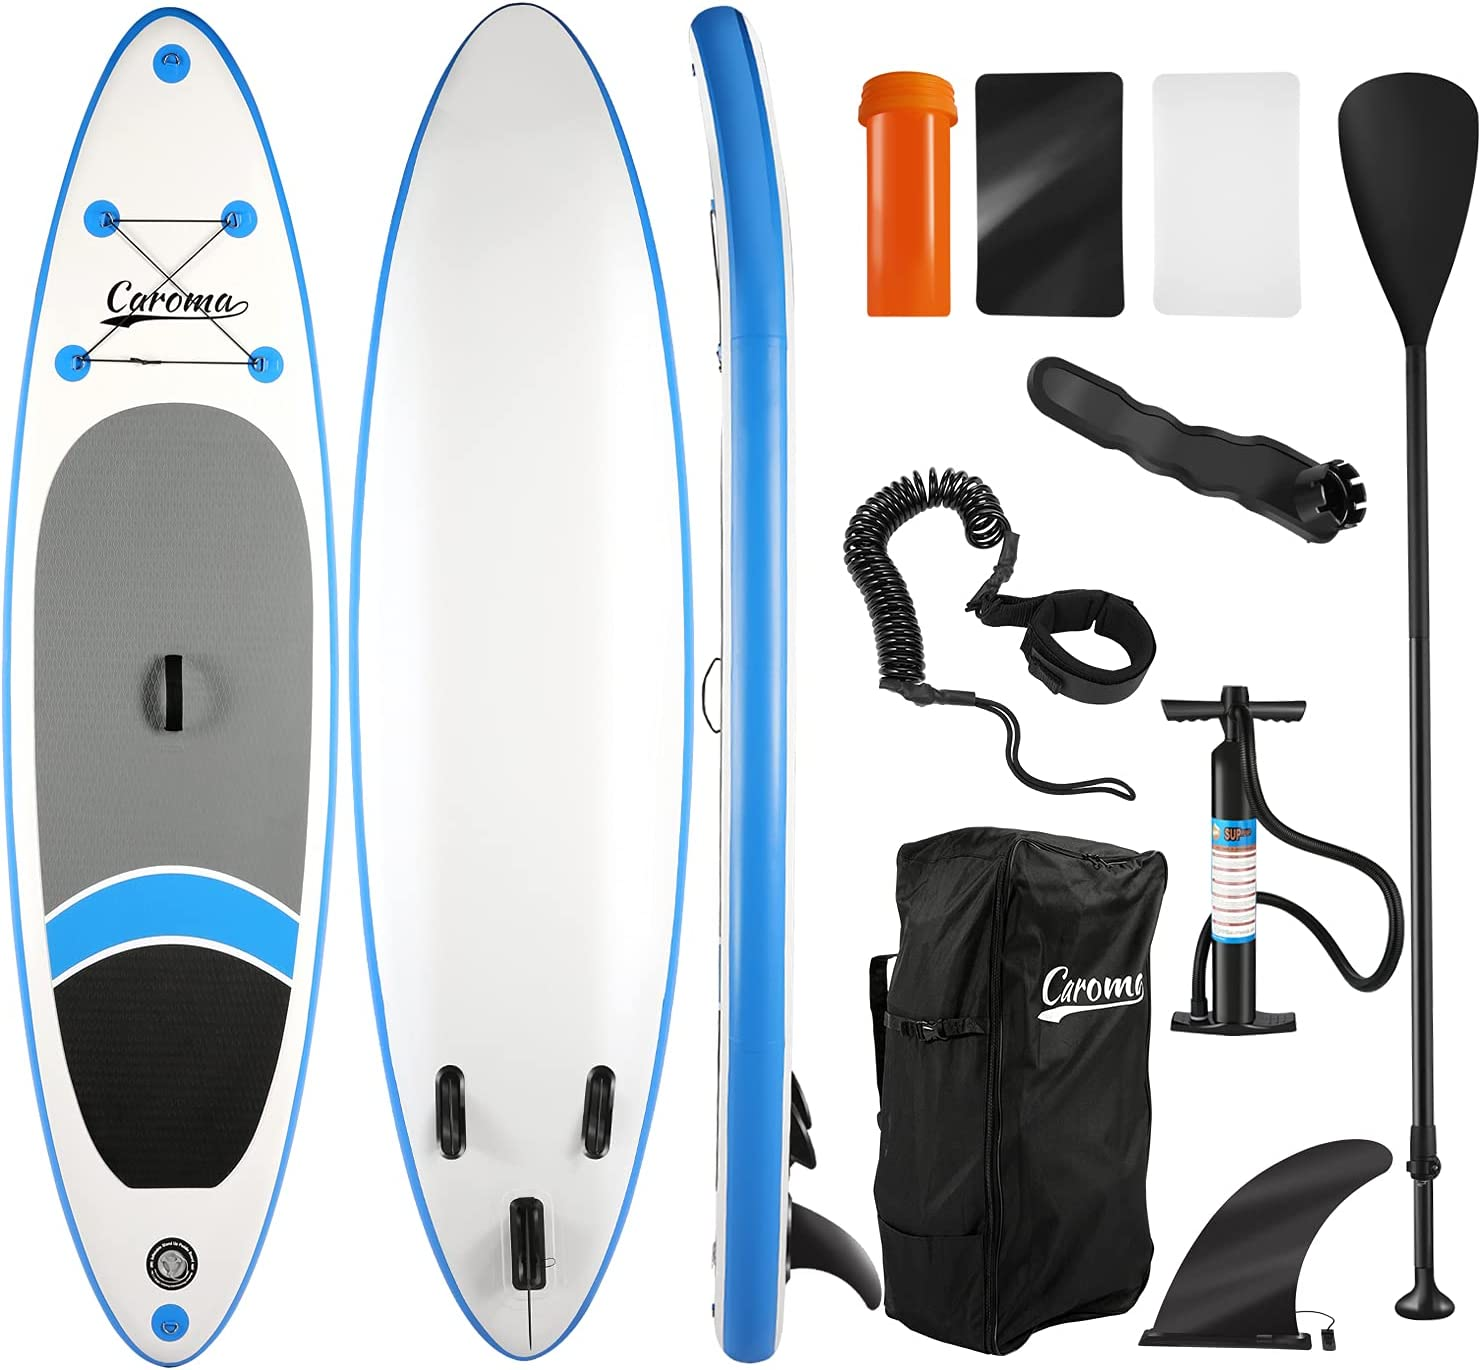 Caroma Inflatable Stand Up Paddle 無料 with Premium SUP Board Access 入手困難